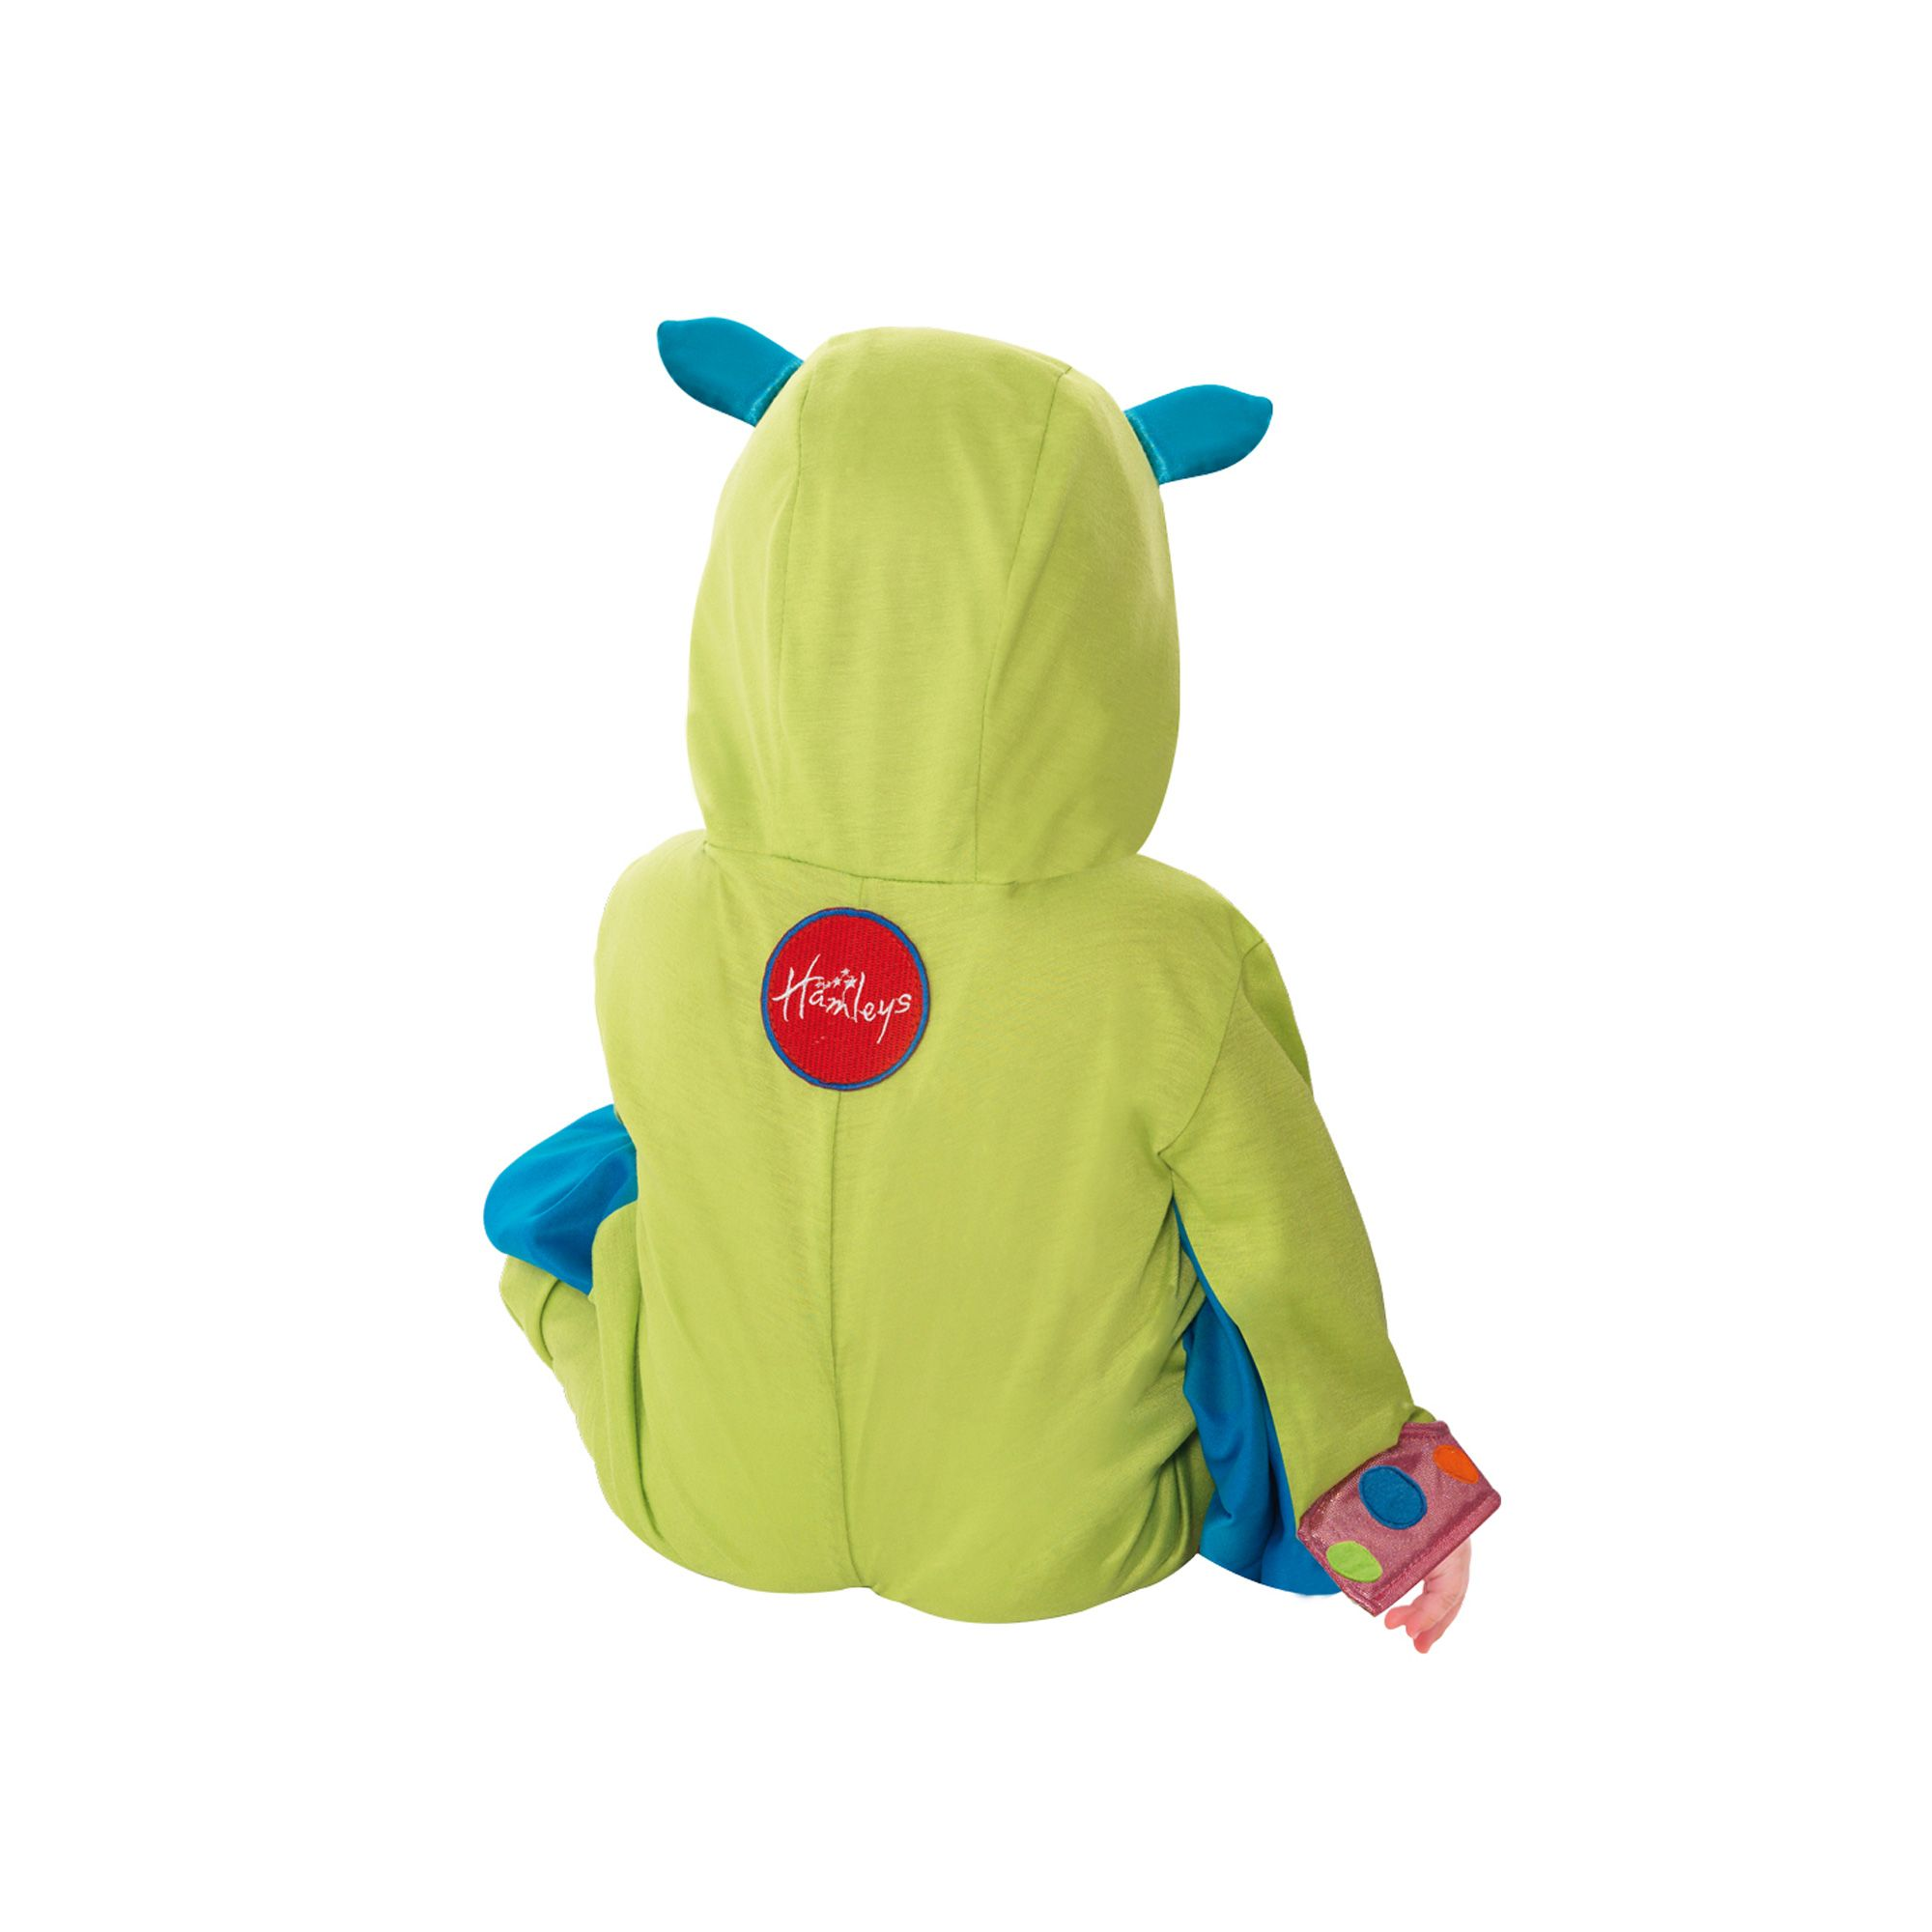 Hamleys Dinosaur Boy Costume 3-4 Years